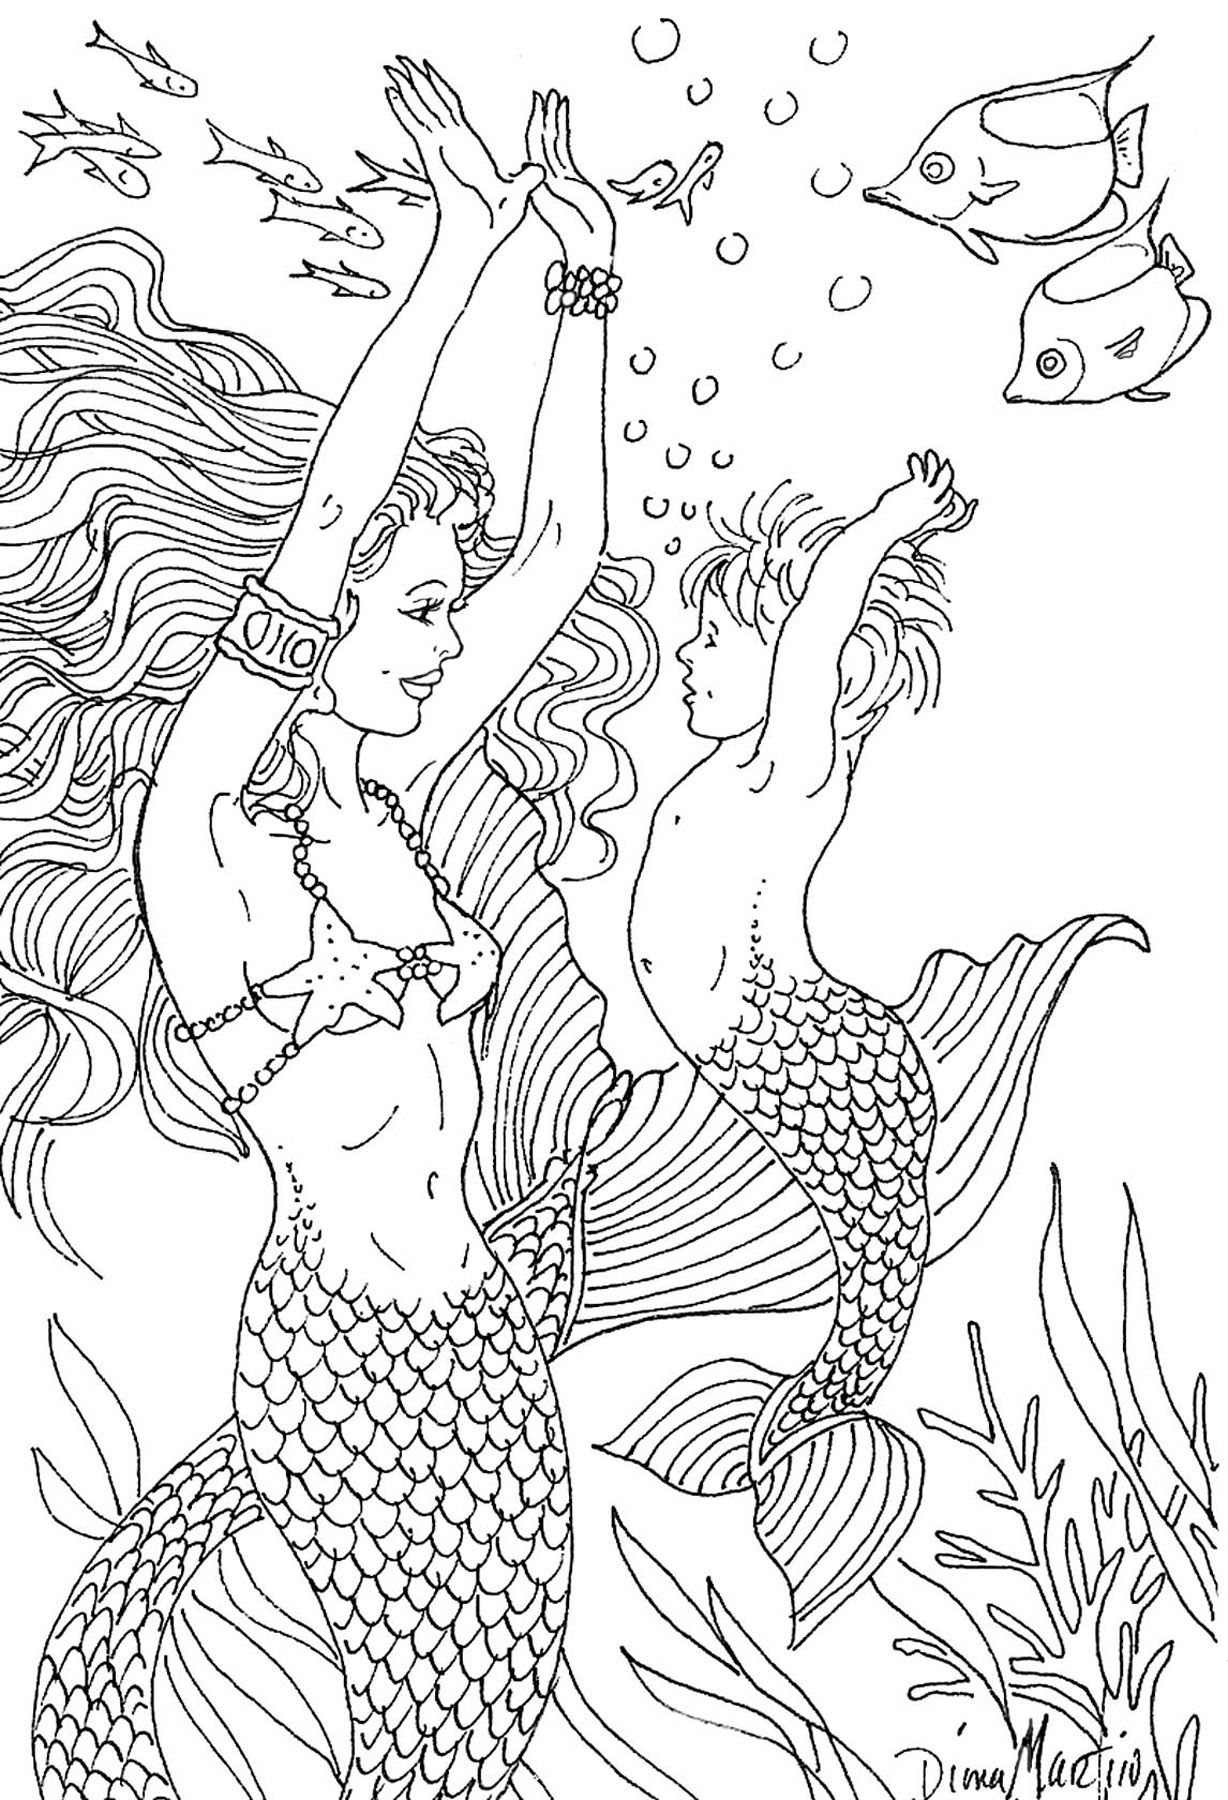 Learning To Swim Baby Mommy Teach Download Printable Mermaid Etsy Mermaid Coloring Pages Mermaid Coloring Coloring Pages